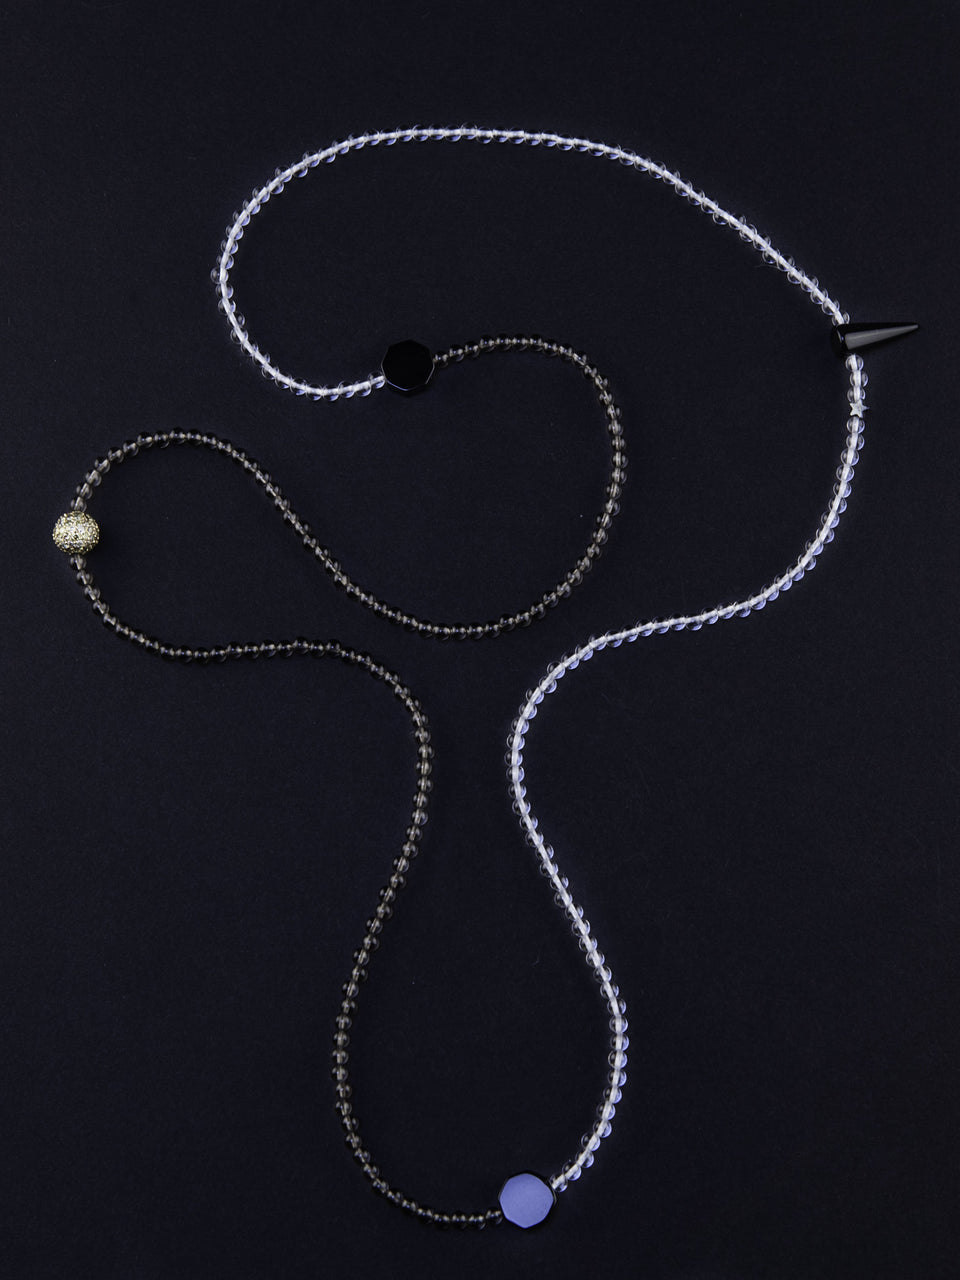 Prosperity Diamond Necklace